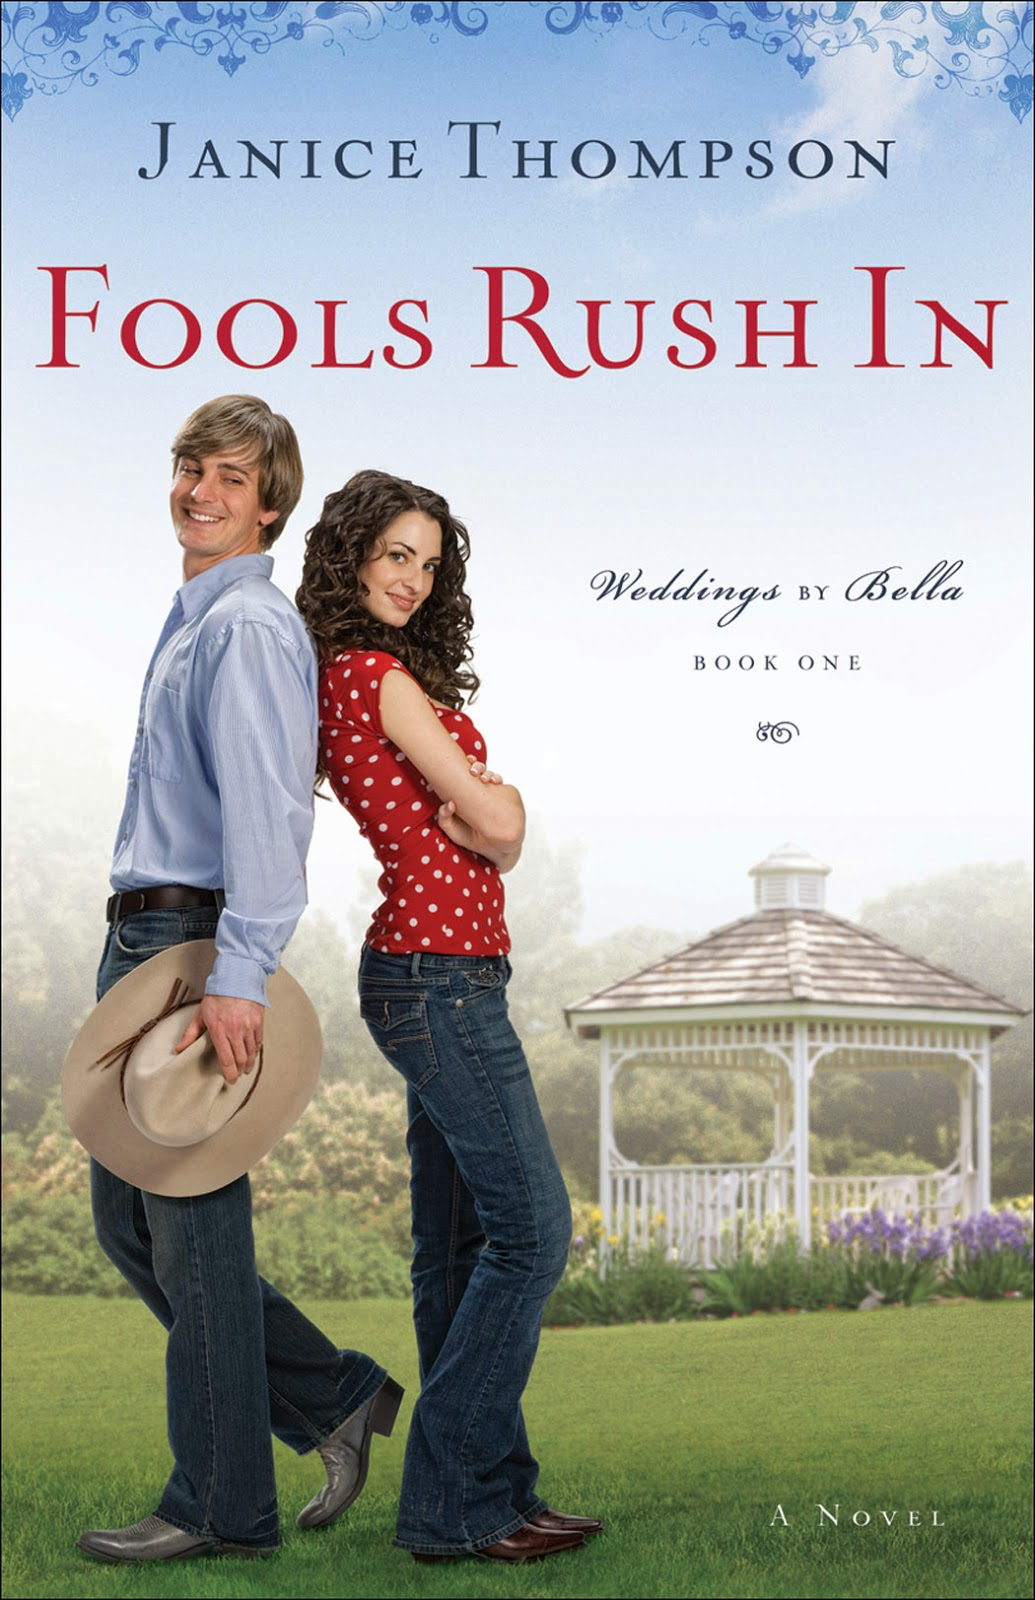 letmecrossover_blog_michele_mattos_blogger_book_beachyreads_reviews_kindle_fire_fools_rush_in_janice_thompson